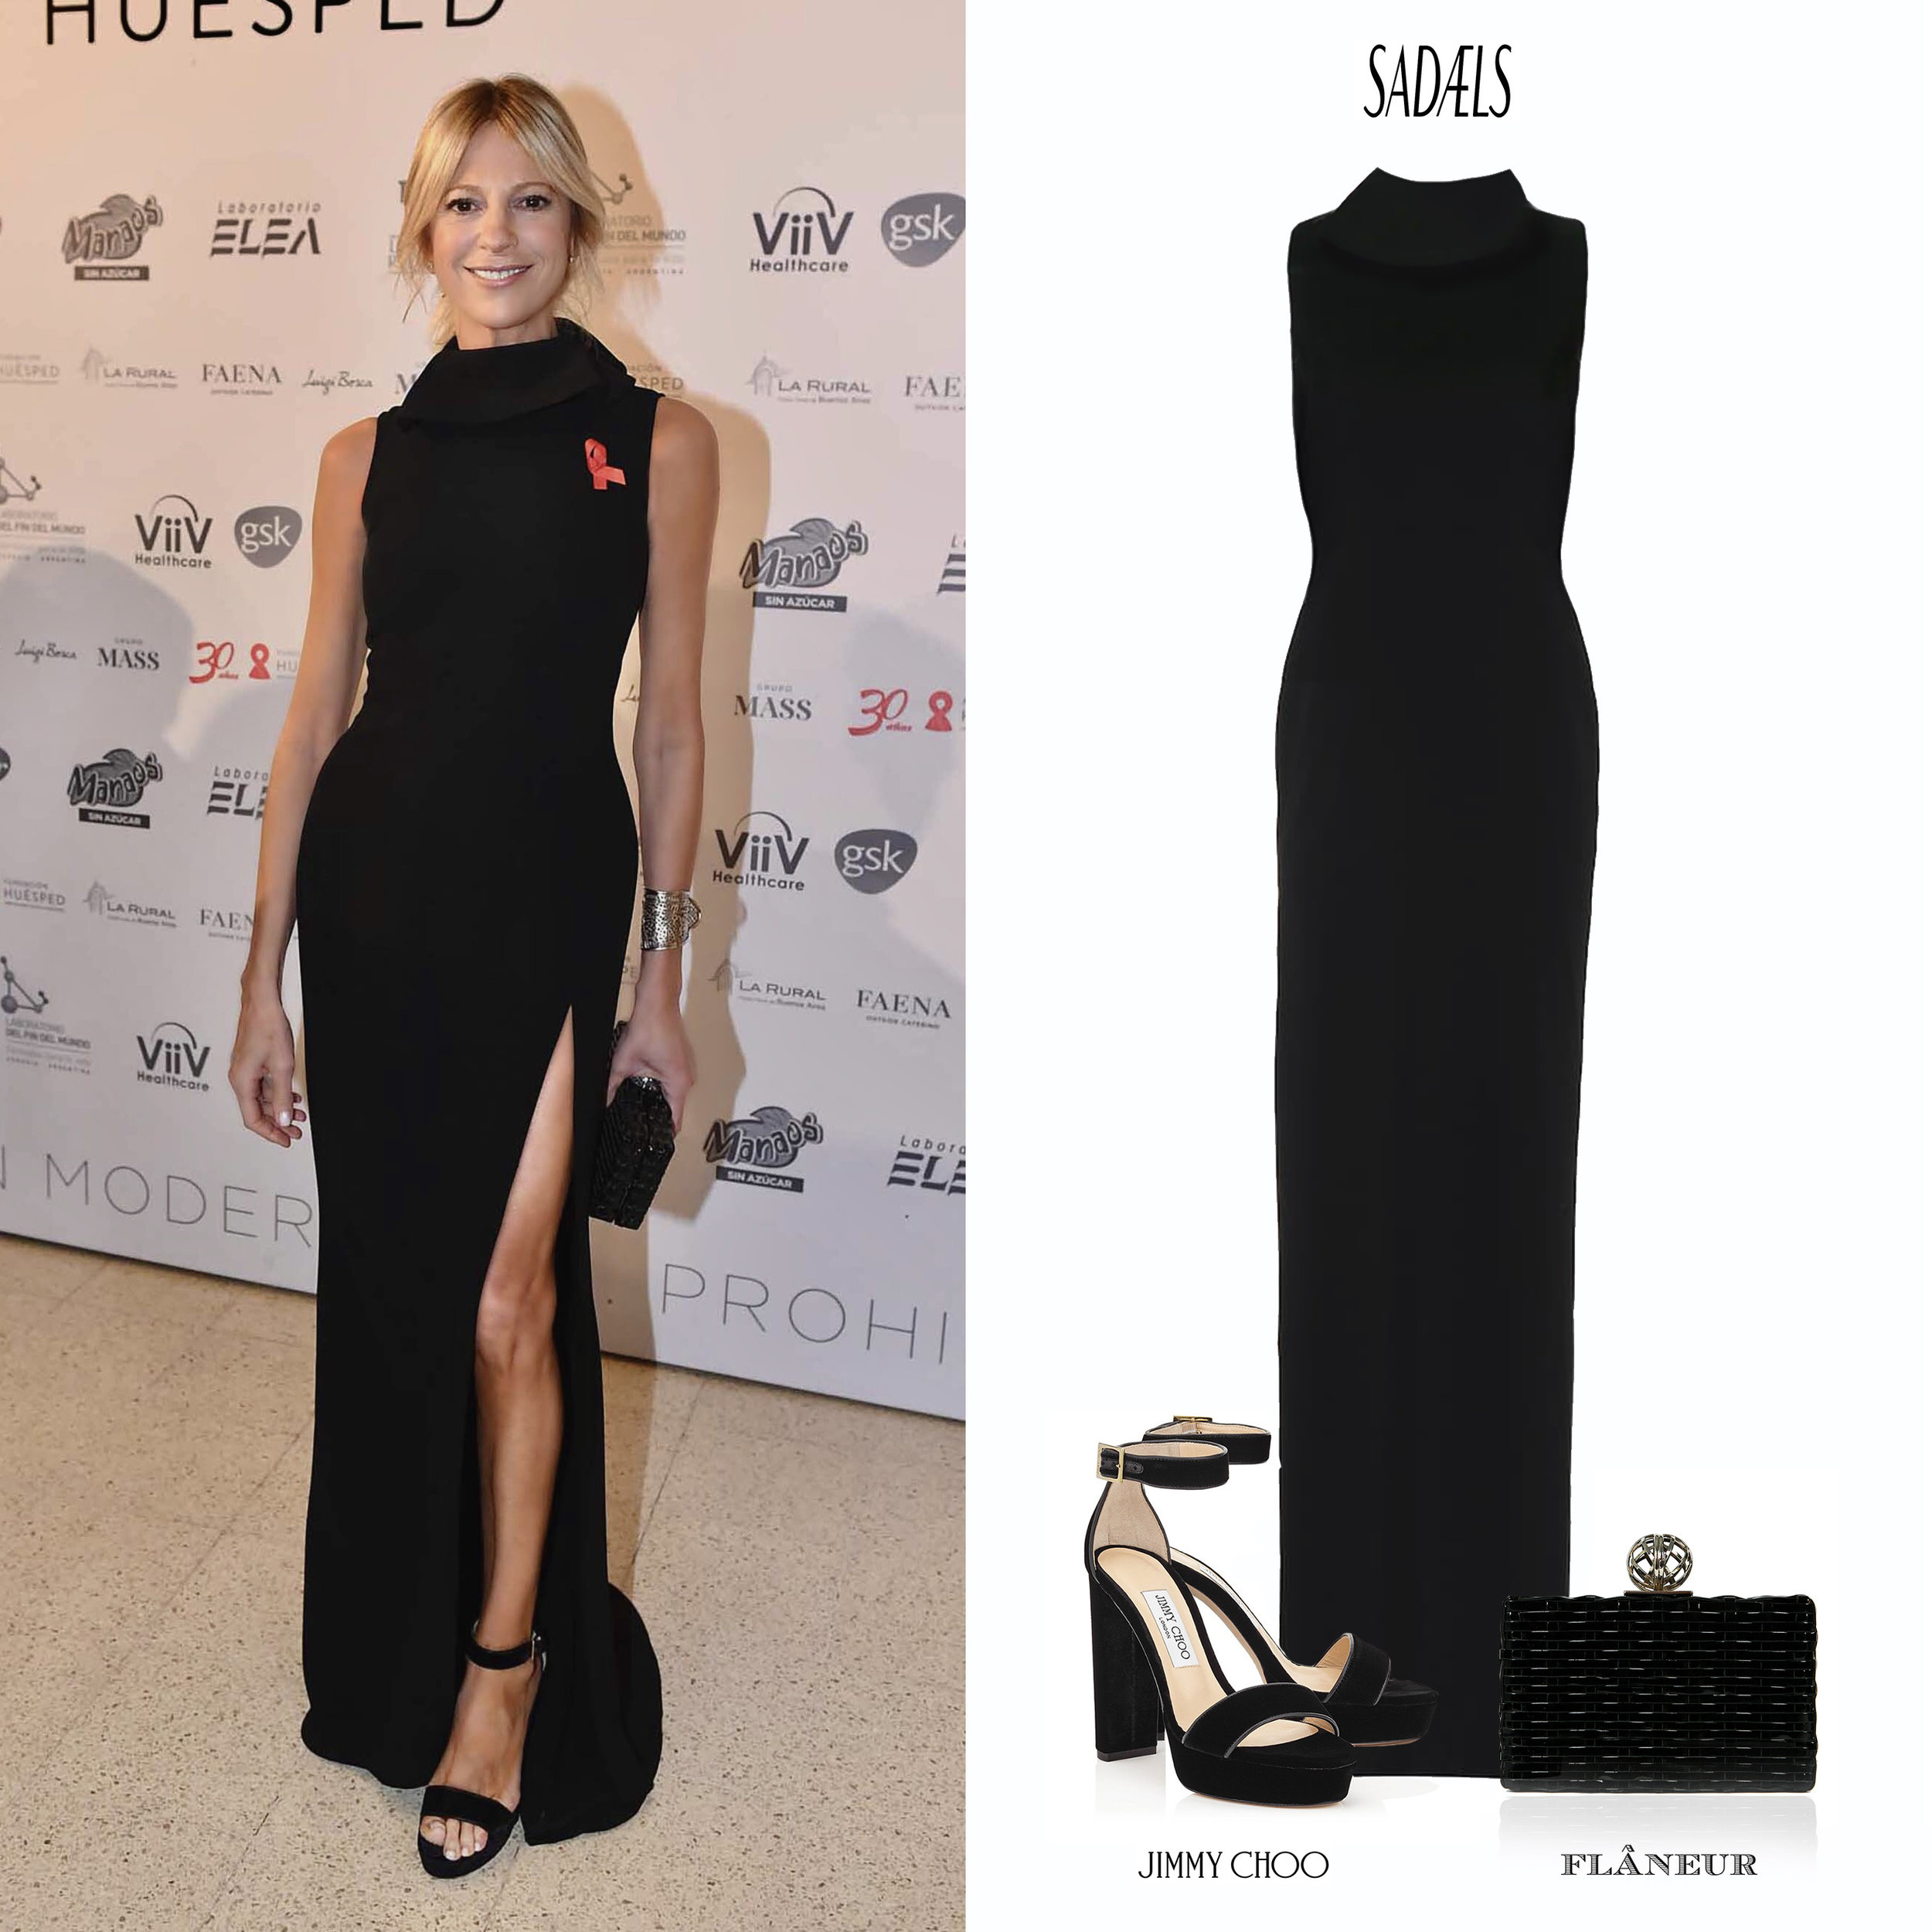 Claudia_Fontan_Fundacion_Huesped_Vestido_Black_Sleeveless_Dress_Sadaels_Saels_Sandalias_Holly_Sandals_Clutch_Trenzado_Intrecciato_Leather_Flaneur_Flaneurba.jpg